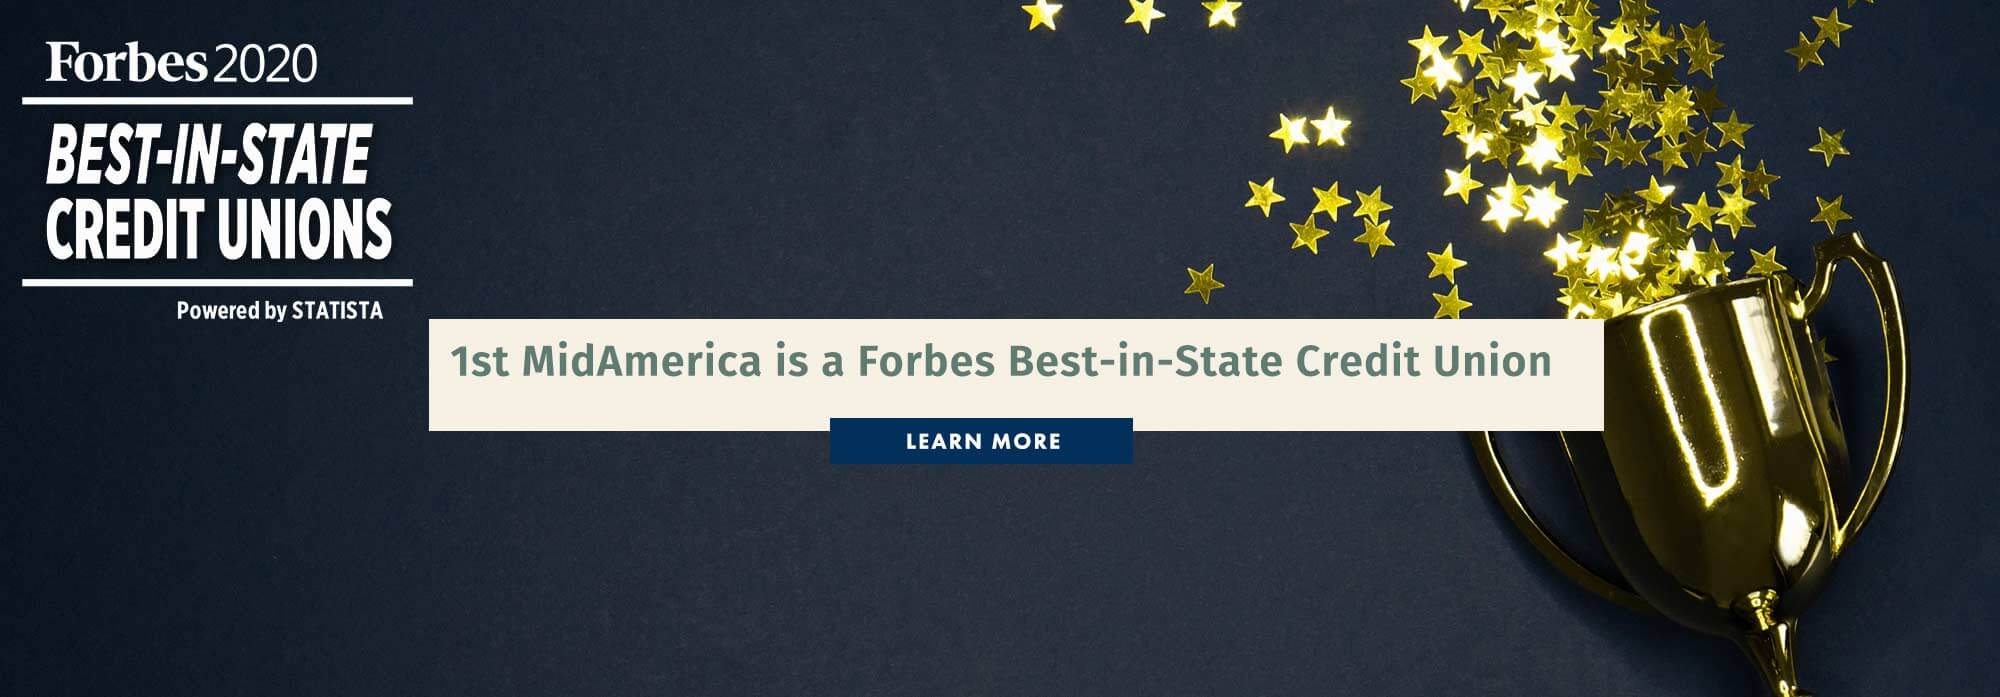 1st MidAmerica is a Forbes Best-in-State Credit Union